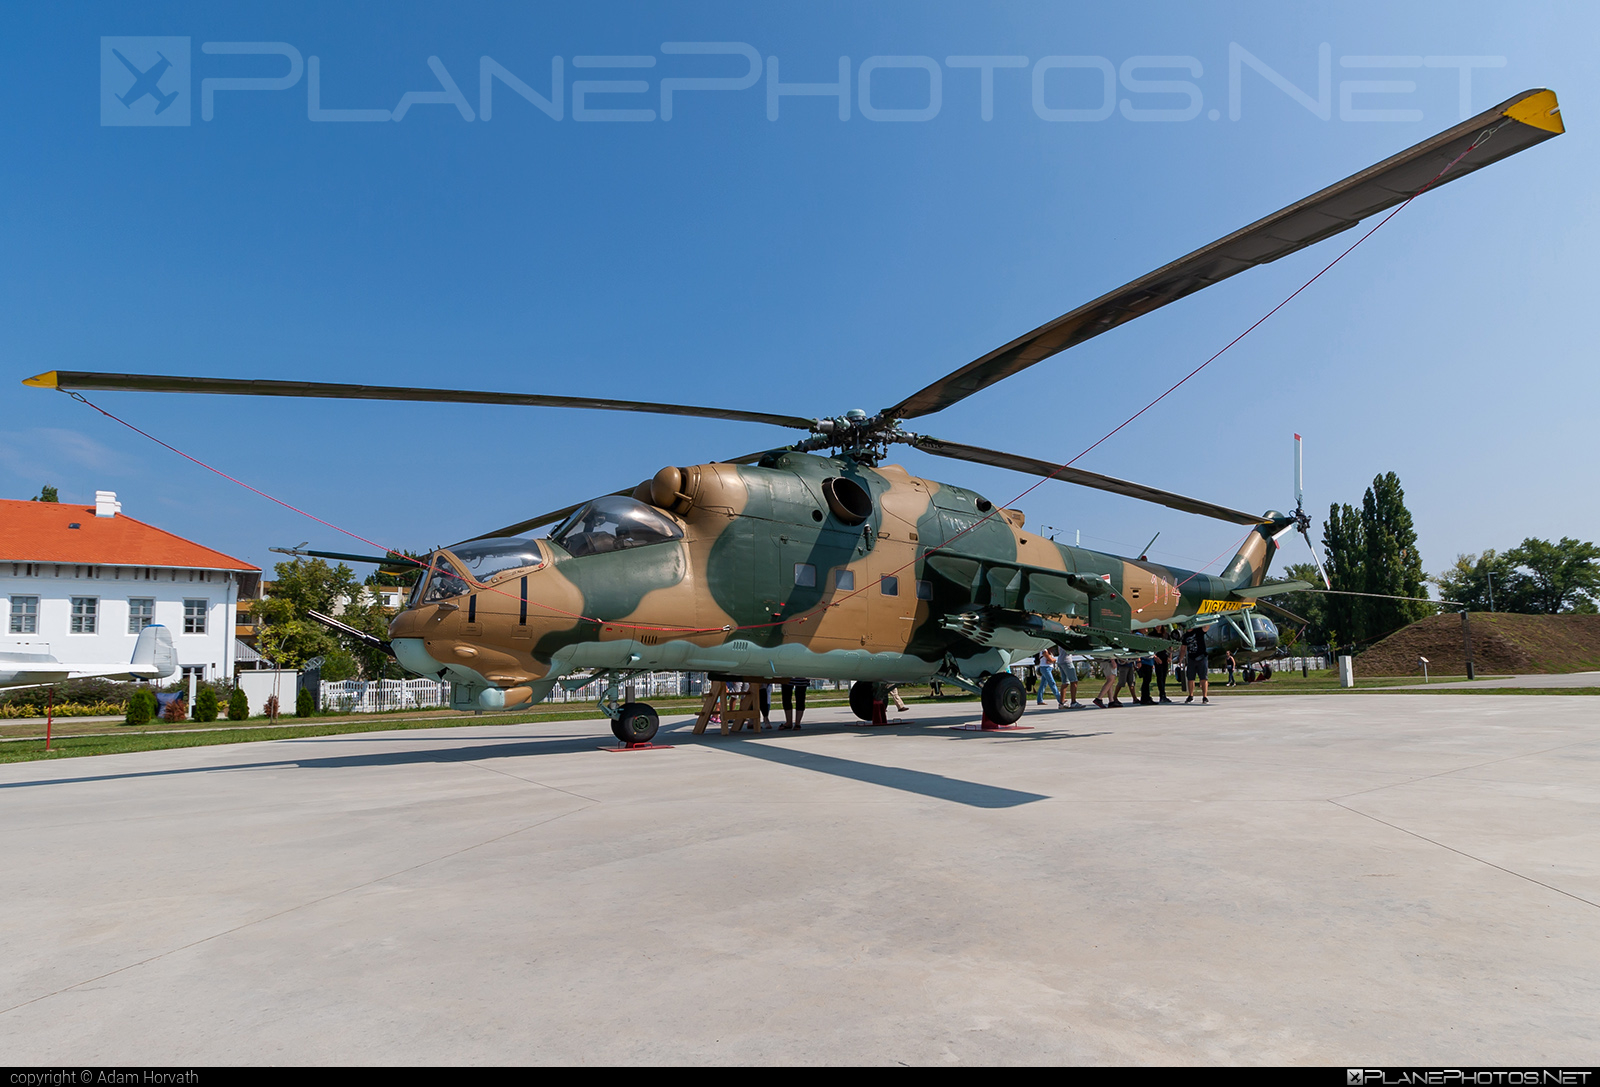 Mil Mi-24D - 114 operated by Magyar Légierő (Hungarian Air Force) #hungarianairforce #magyarlegiero #mi24 #mi24d #mil #mil24 #mil24d #milhelicopters